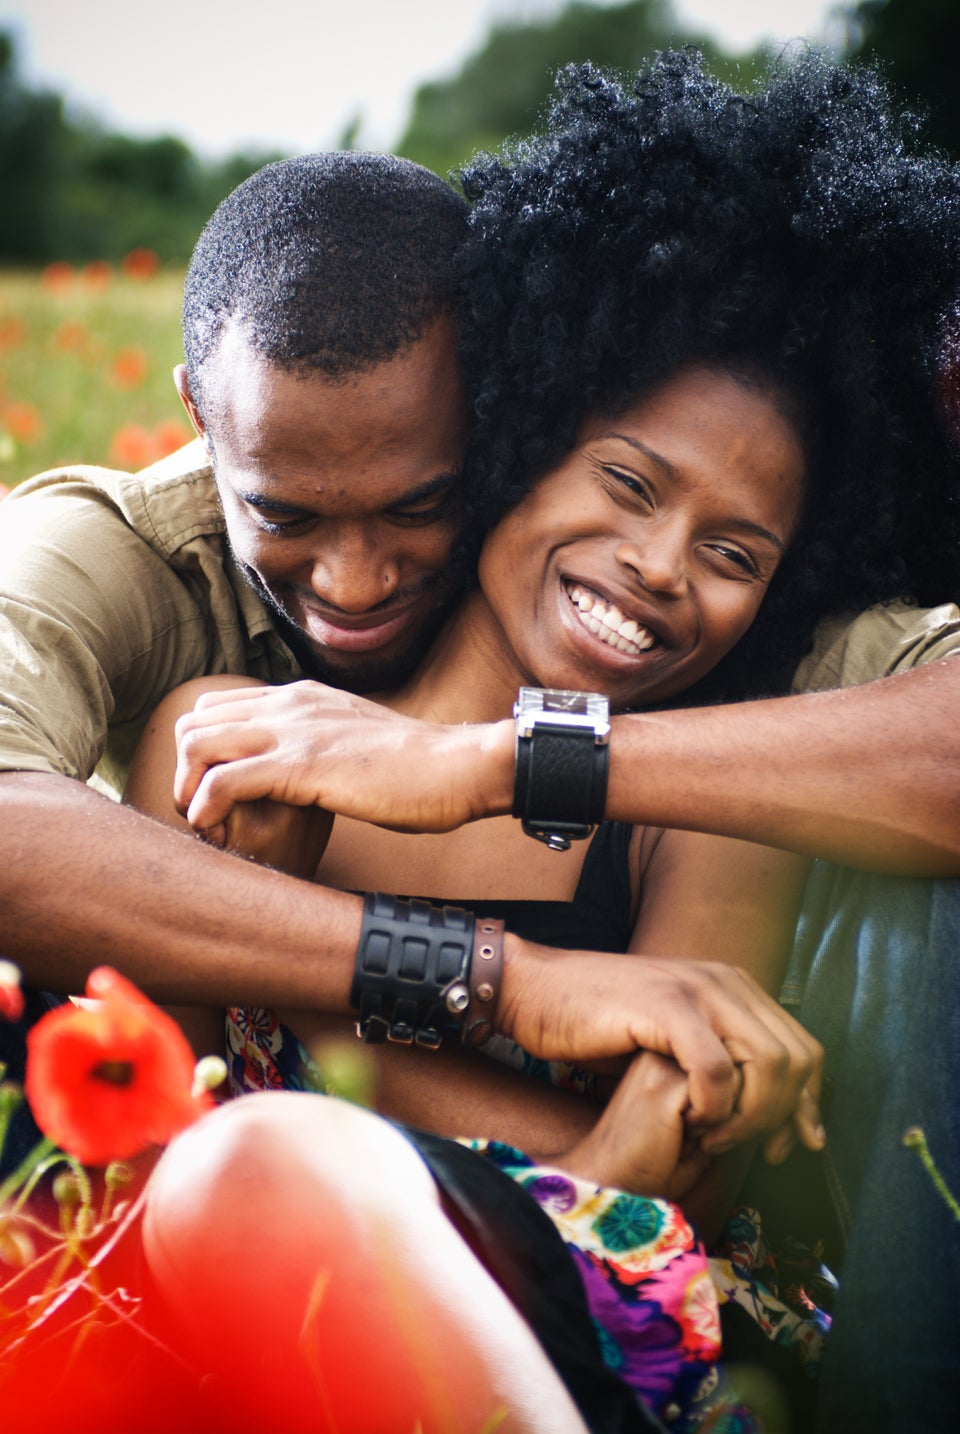 Modern Day Matchmaker: 16 Signs That the Date Was Great